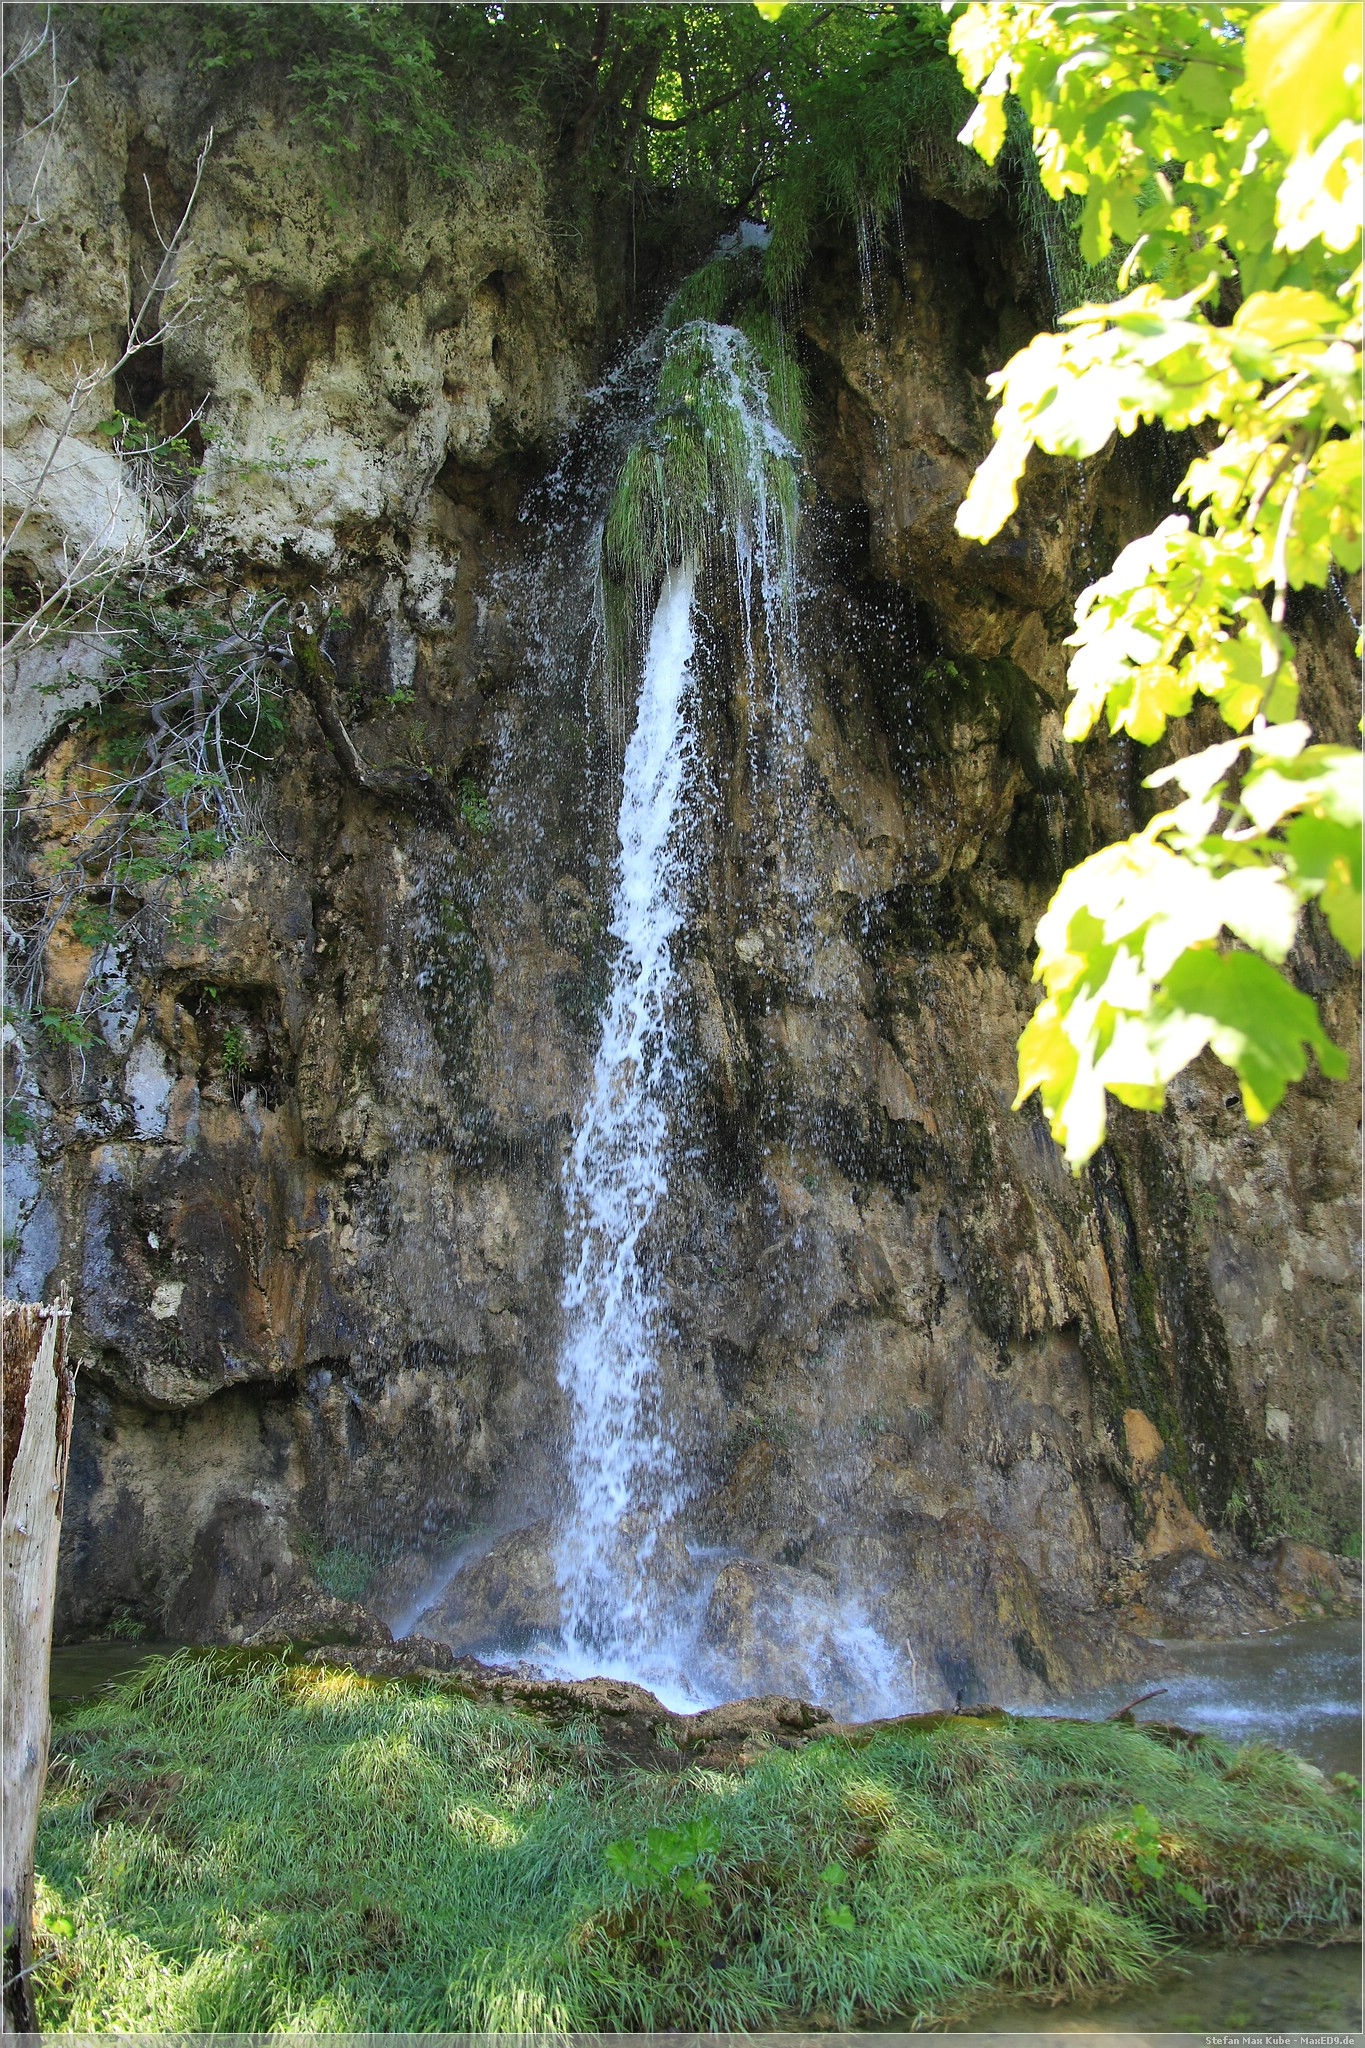 Plitvicer Nationalpark